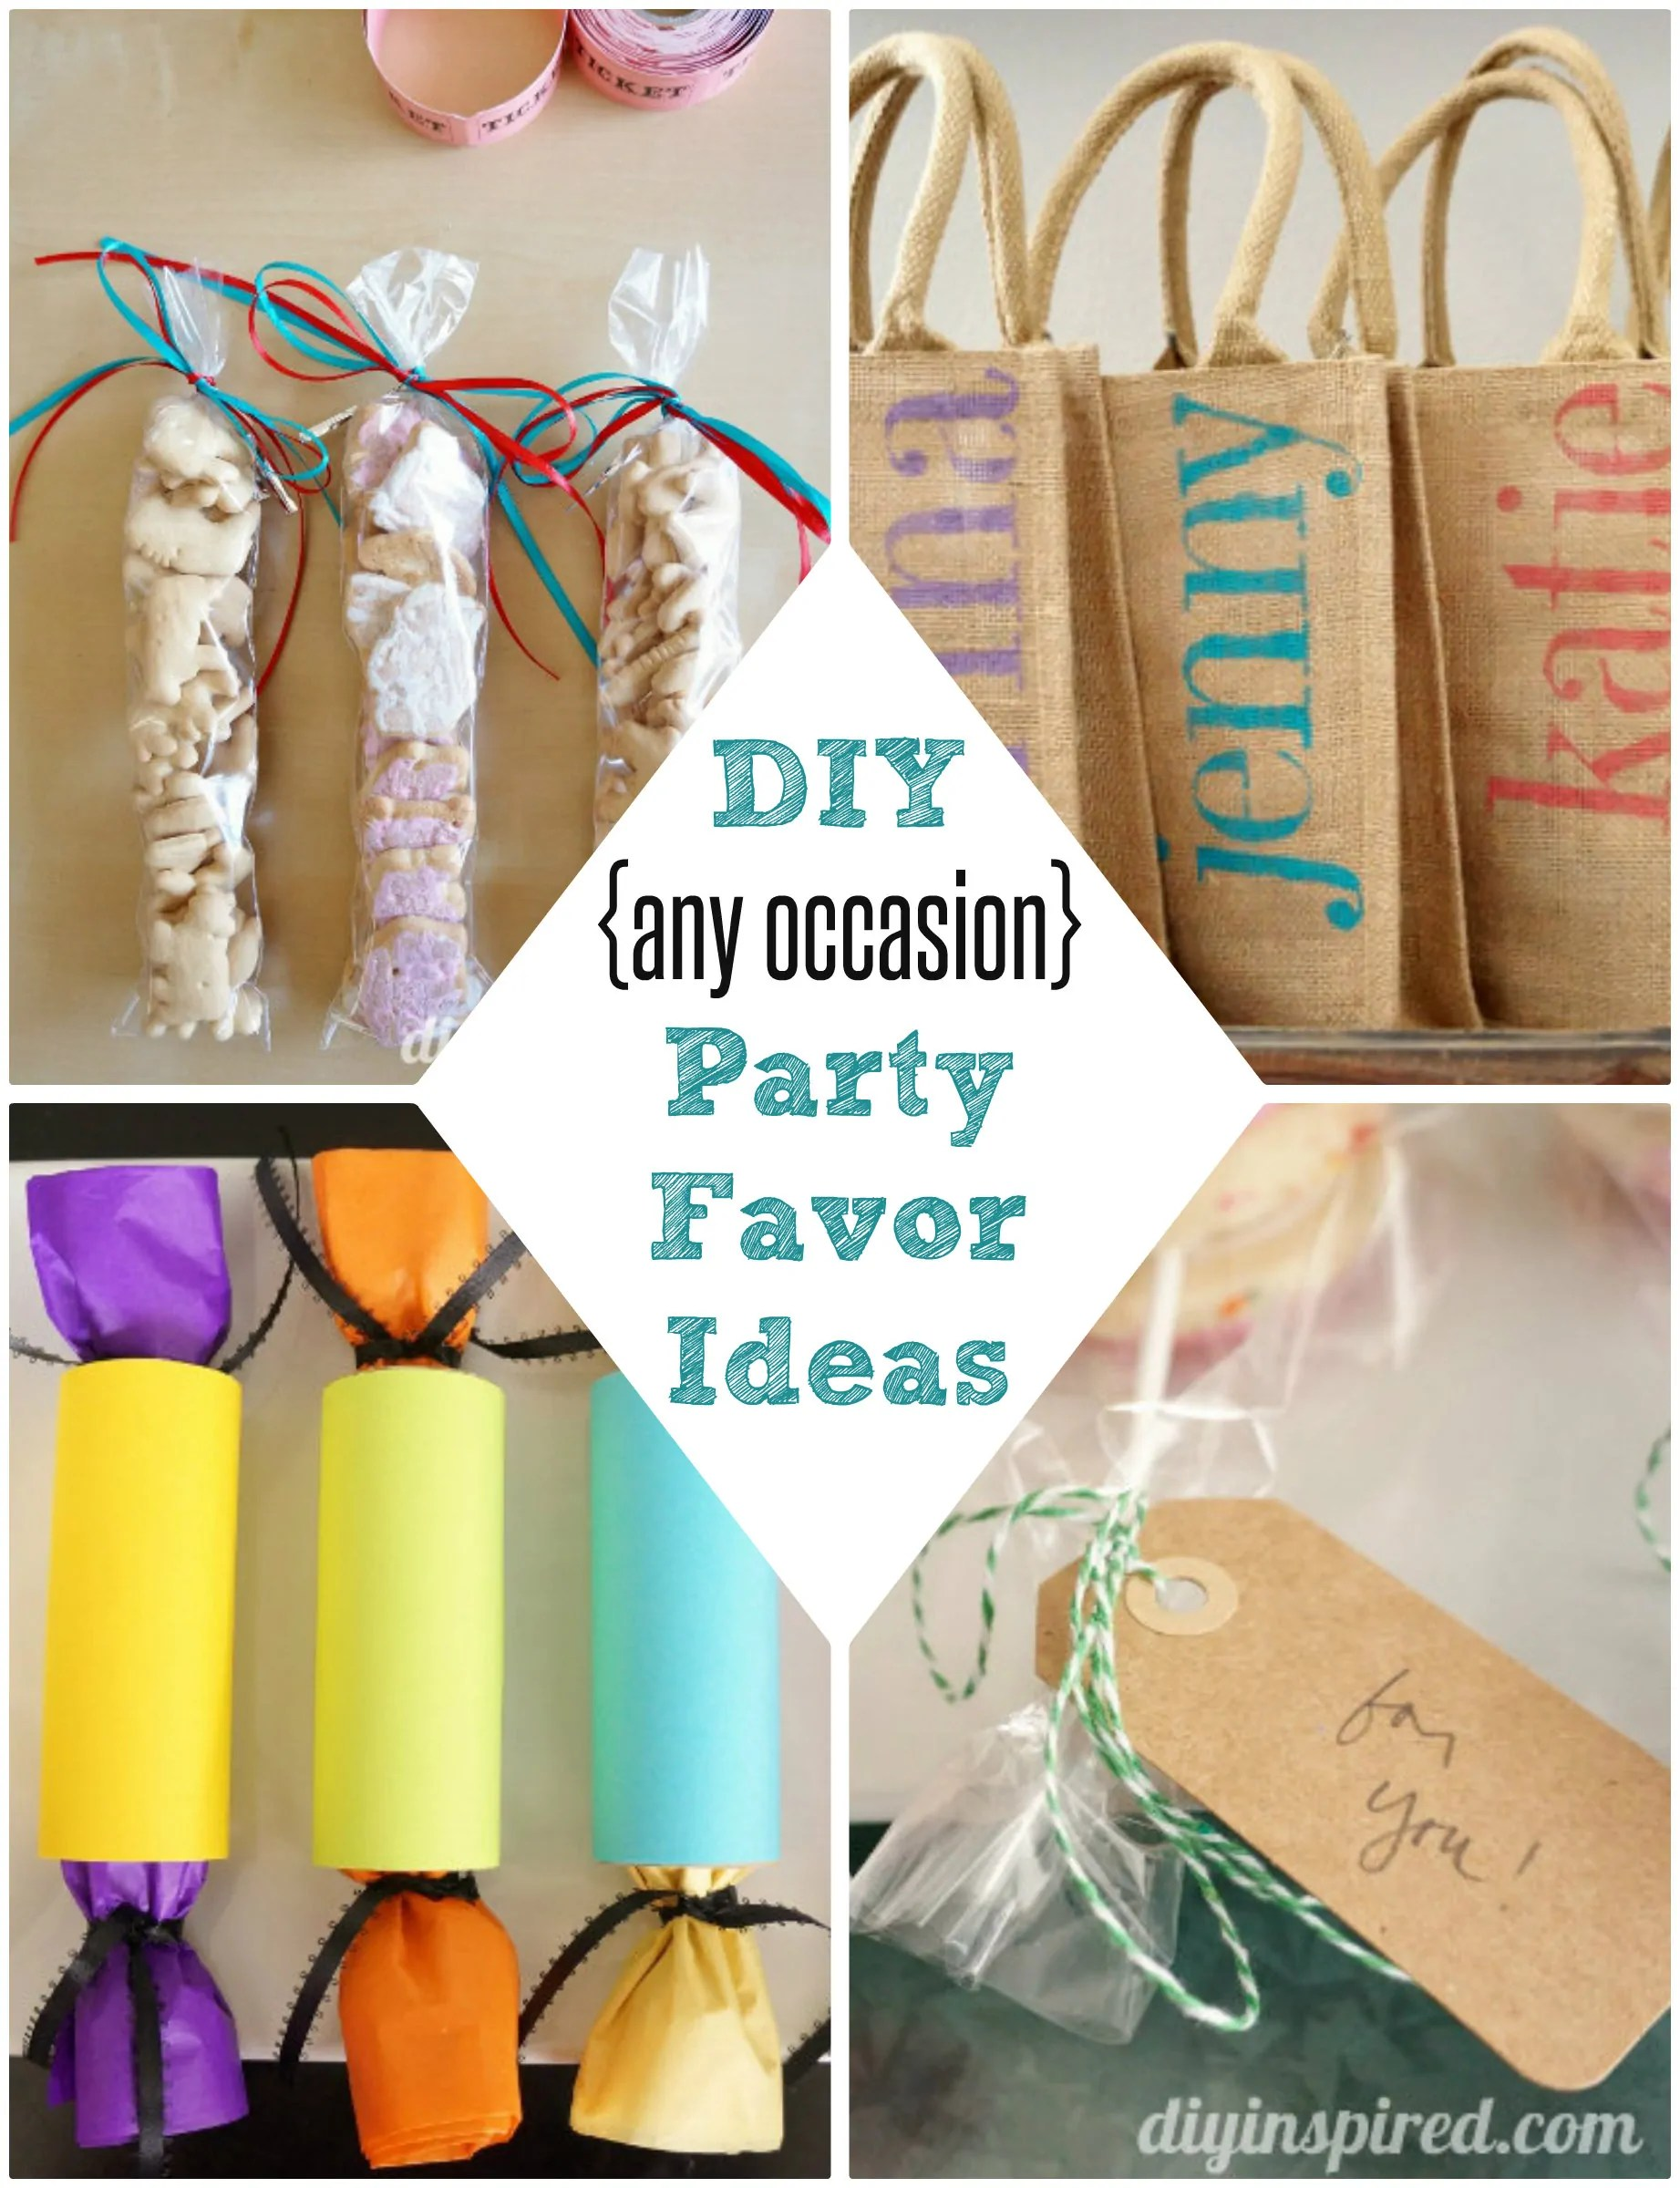 Diy Party Diy Party Favor Ideas Diy Inspired